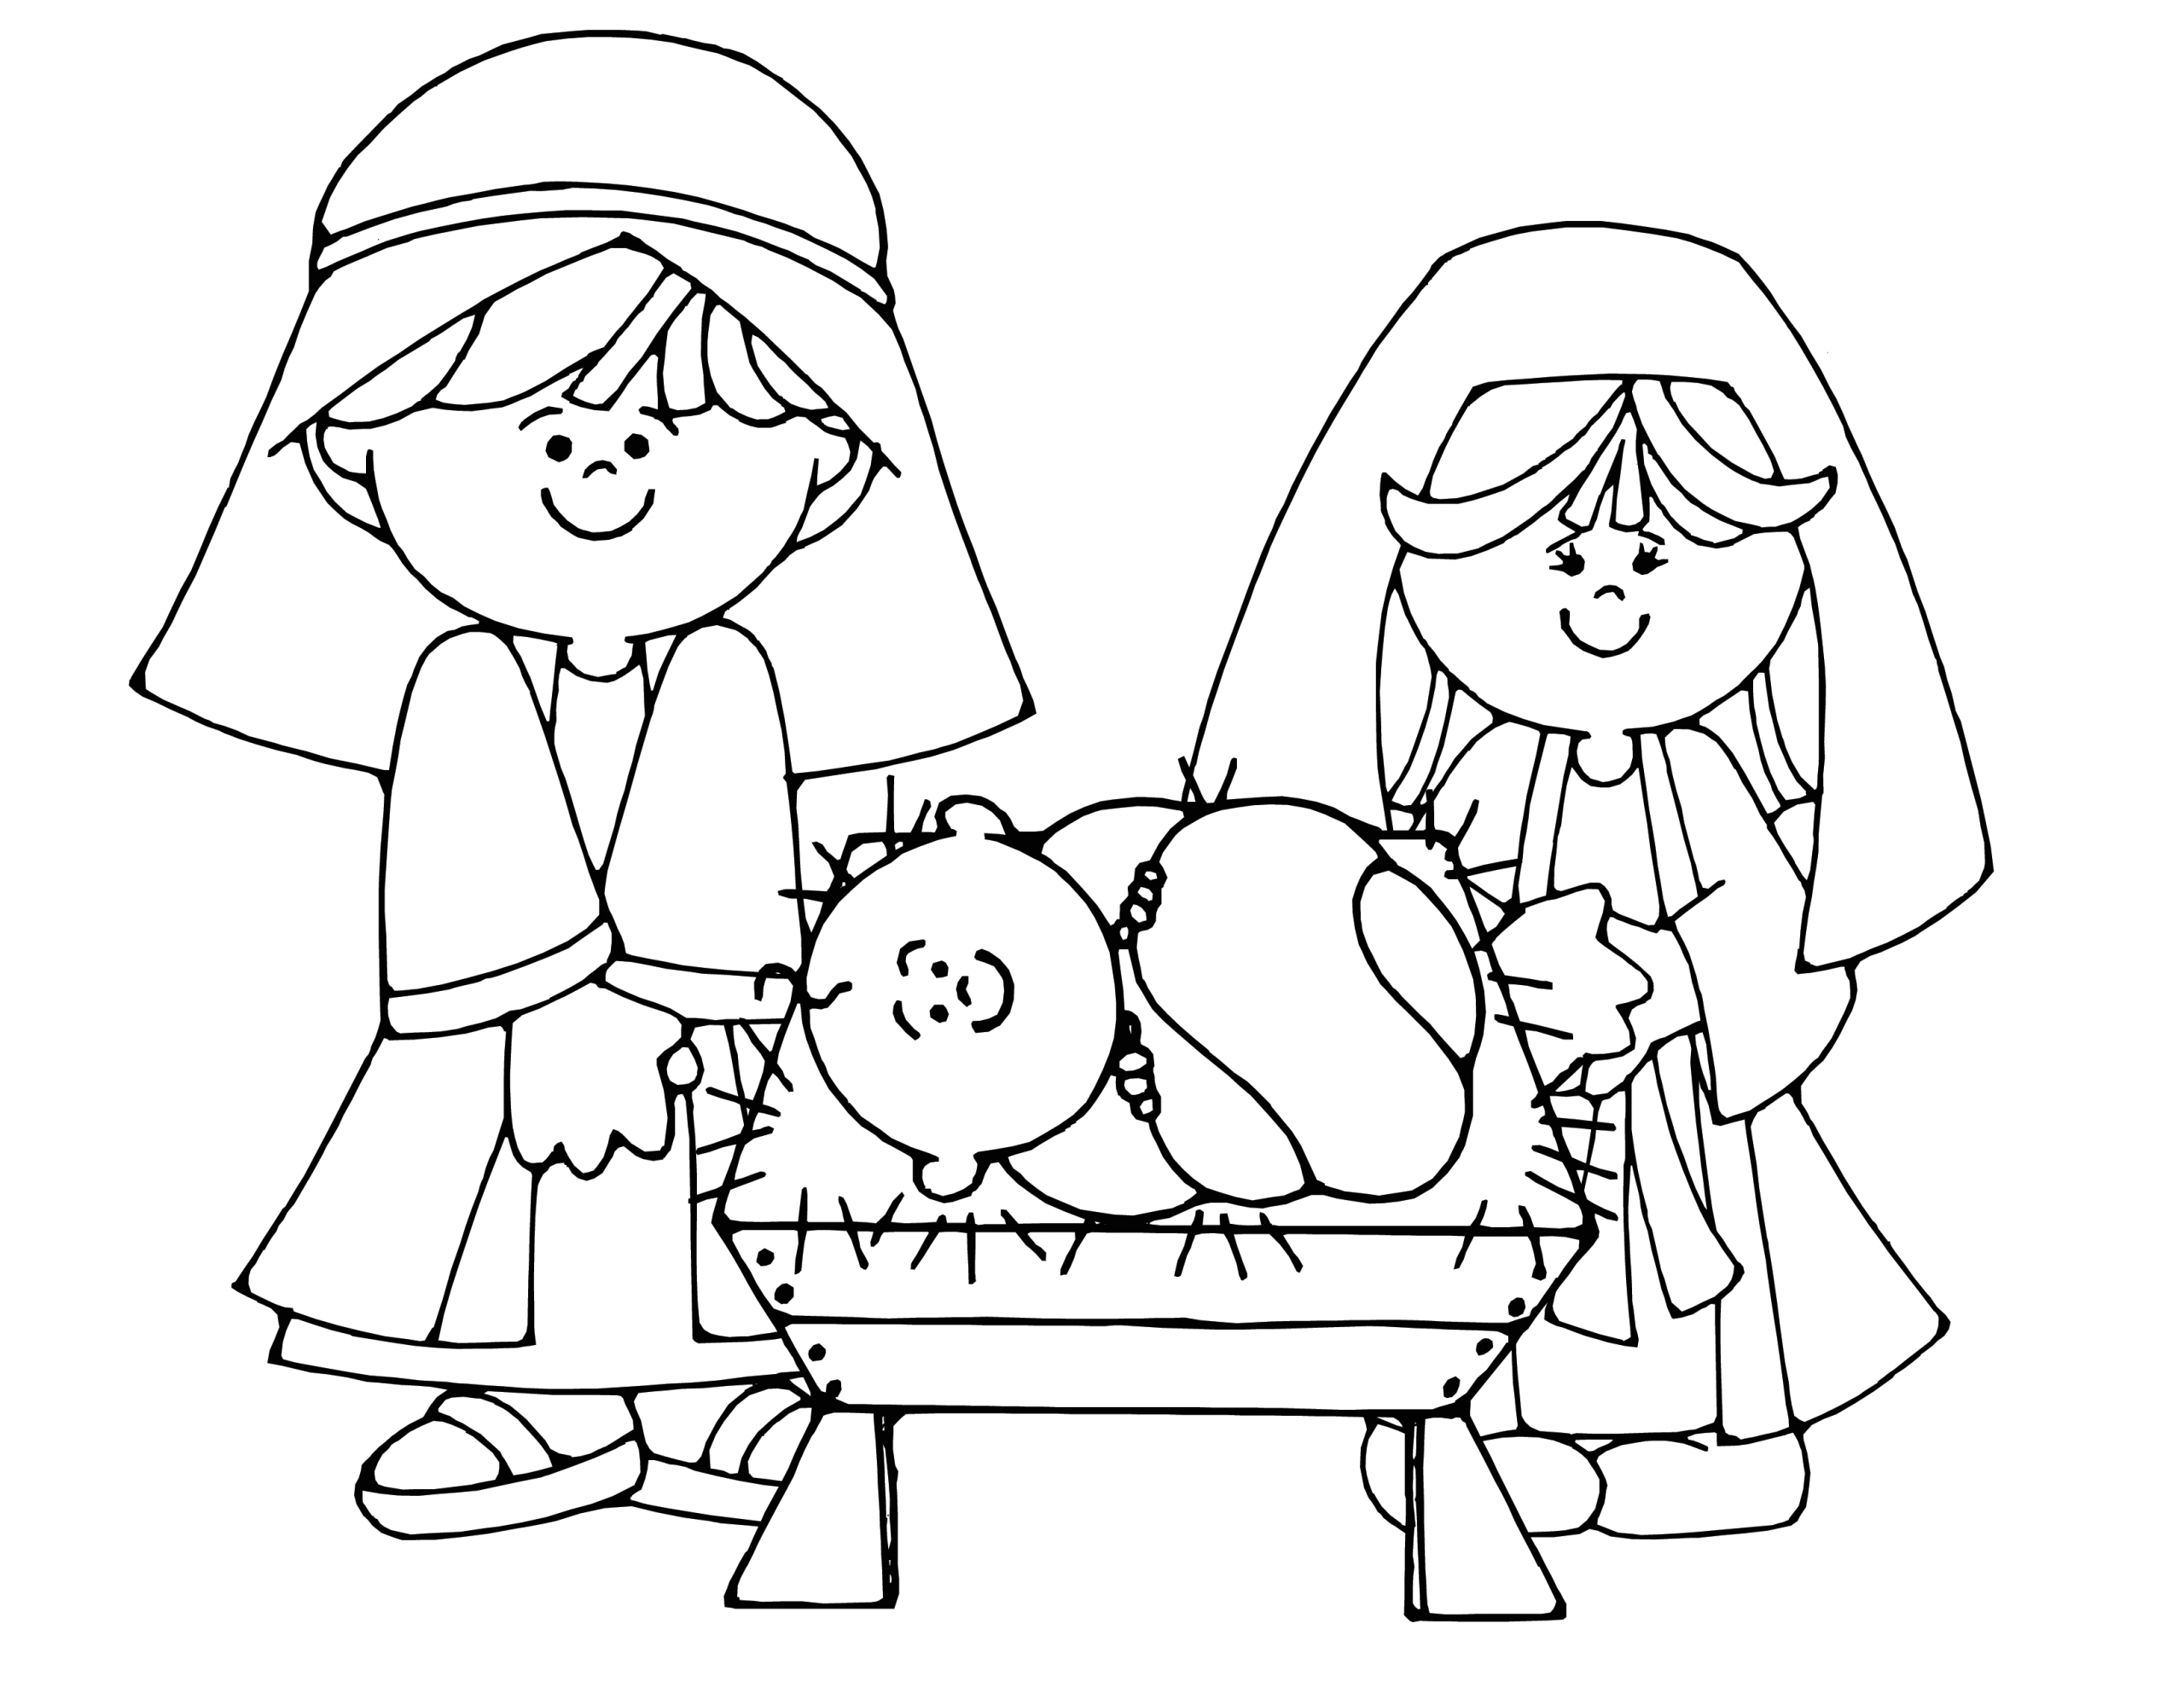 Free Printable Coloring Pages for Christmas Nativity Free Printable Nativity Coloring Pages for Kids Best